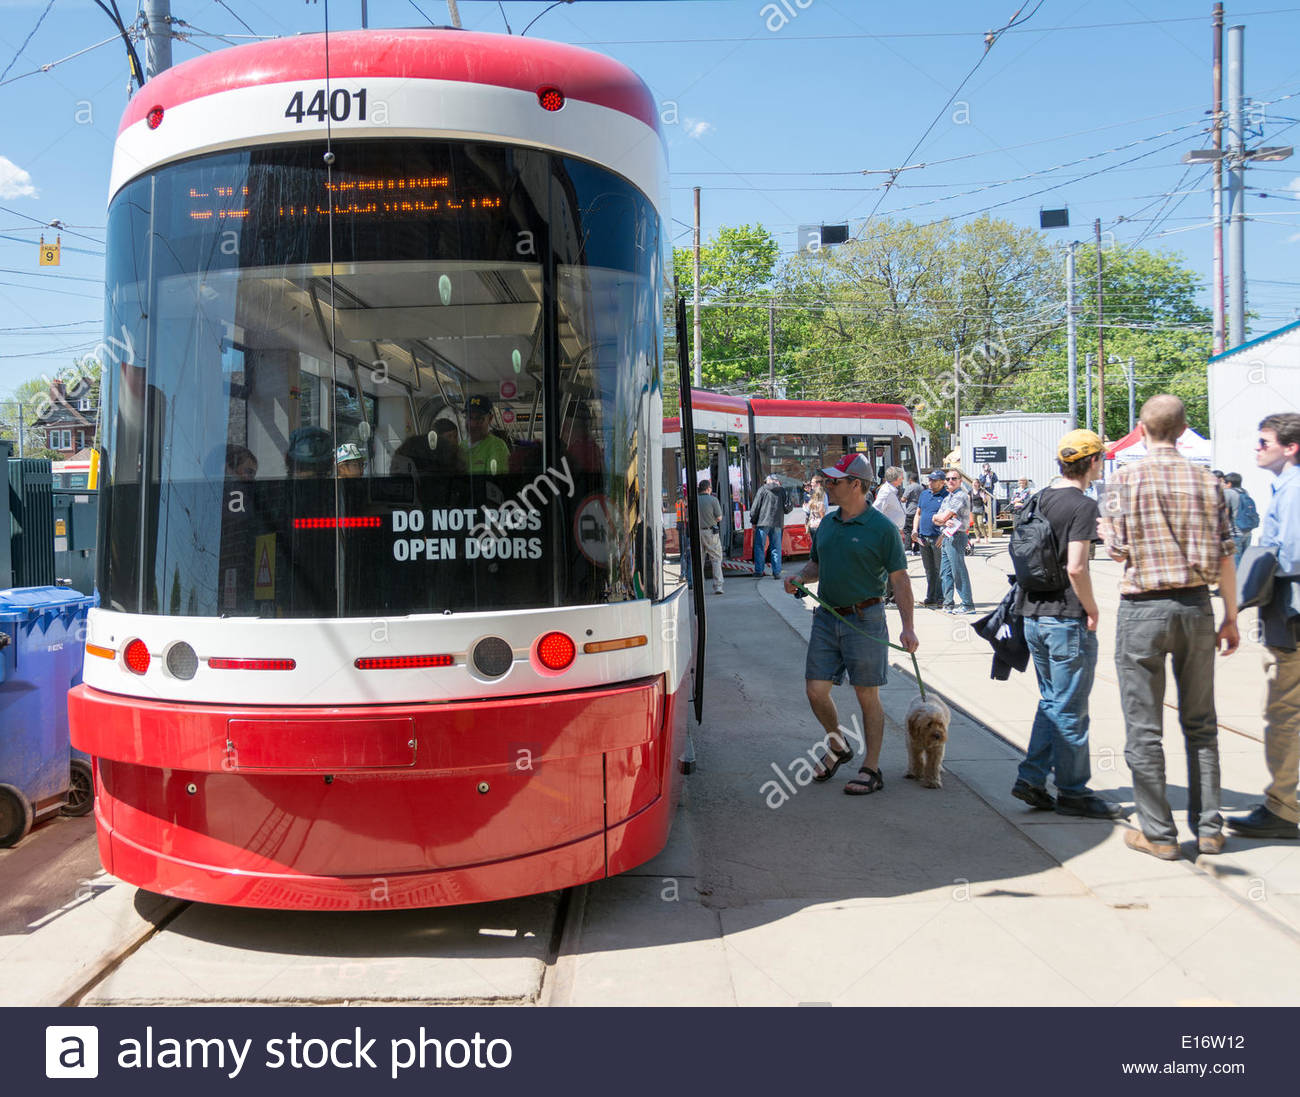 Toronto, Canada. 24th May, 2014. Bombardier new streetcars were presented to the public for the first time by the TTC. The new vehicles will start do their routes in August 2014 as planned by the city. Credit:  Yelena Rodriguez/Alamy Live News - Stock Image